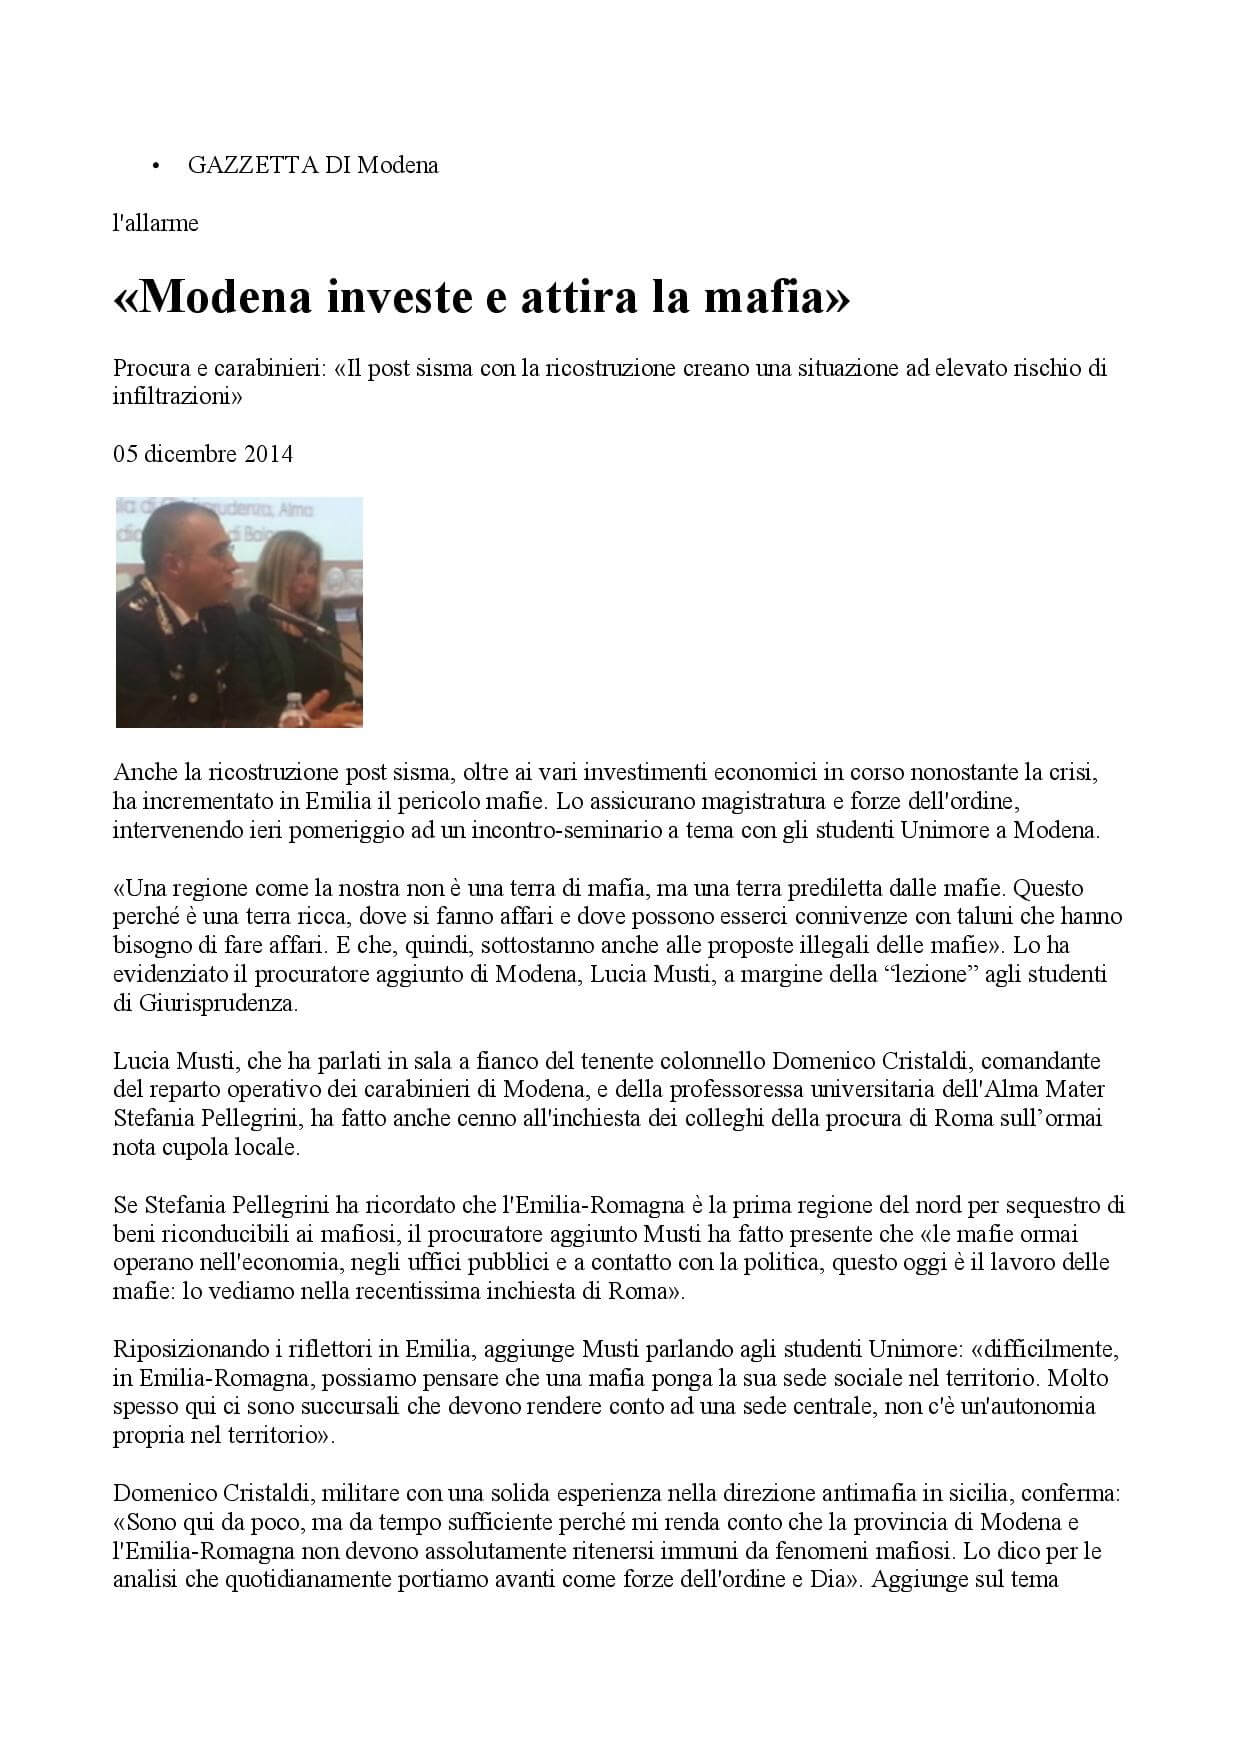 5_12_14_gdm-1-page-001-1